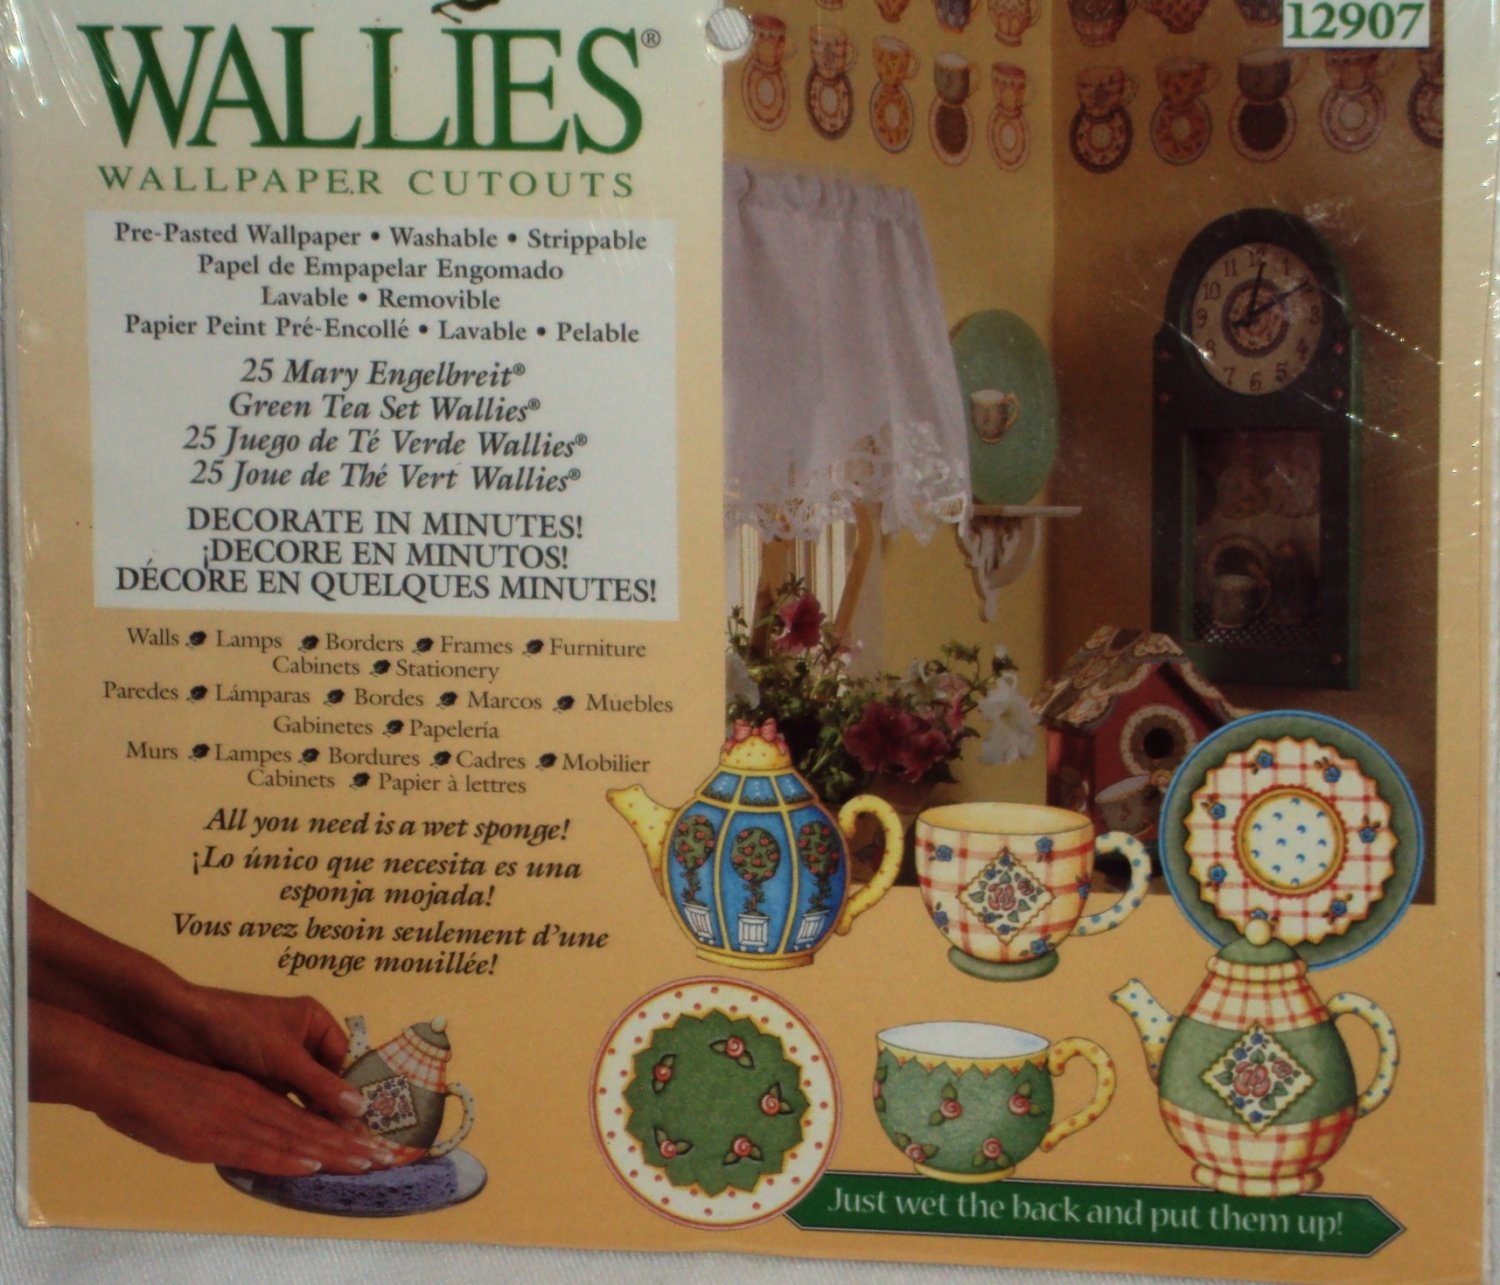 Wallies Wallpaper Cutouts Mary Engelbreit Green Tea Set Cups Pots Saucers Sealed Decals